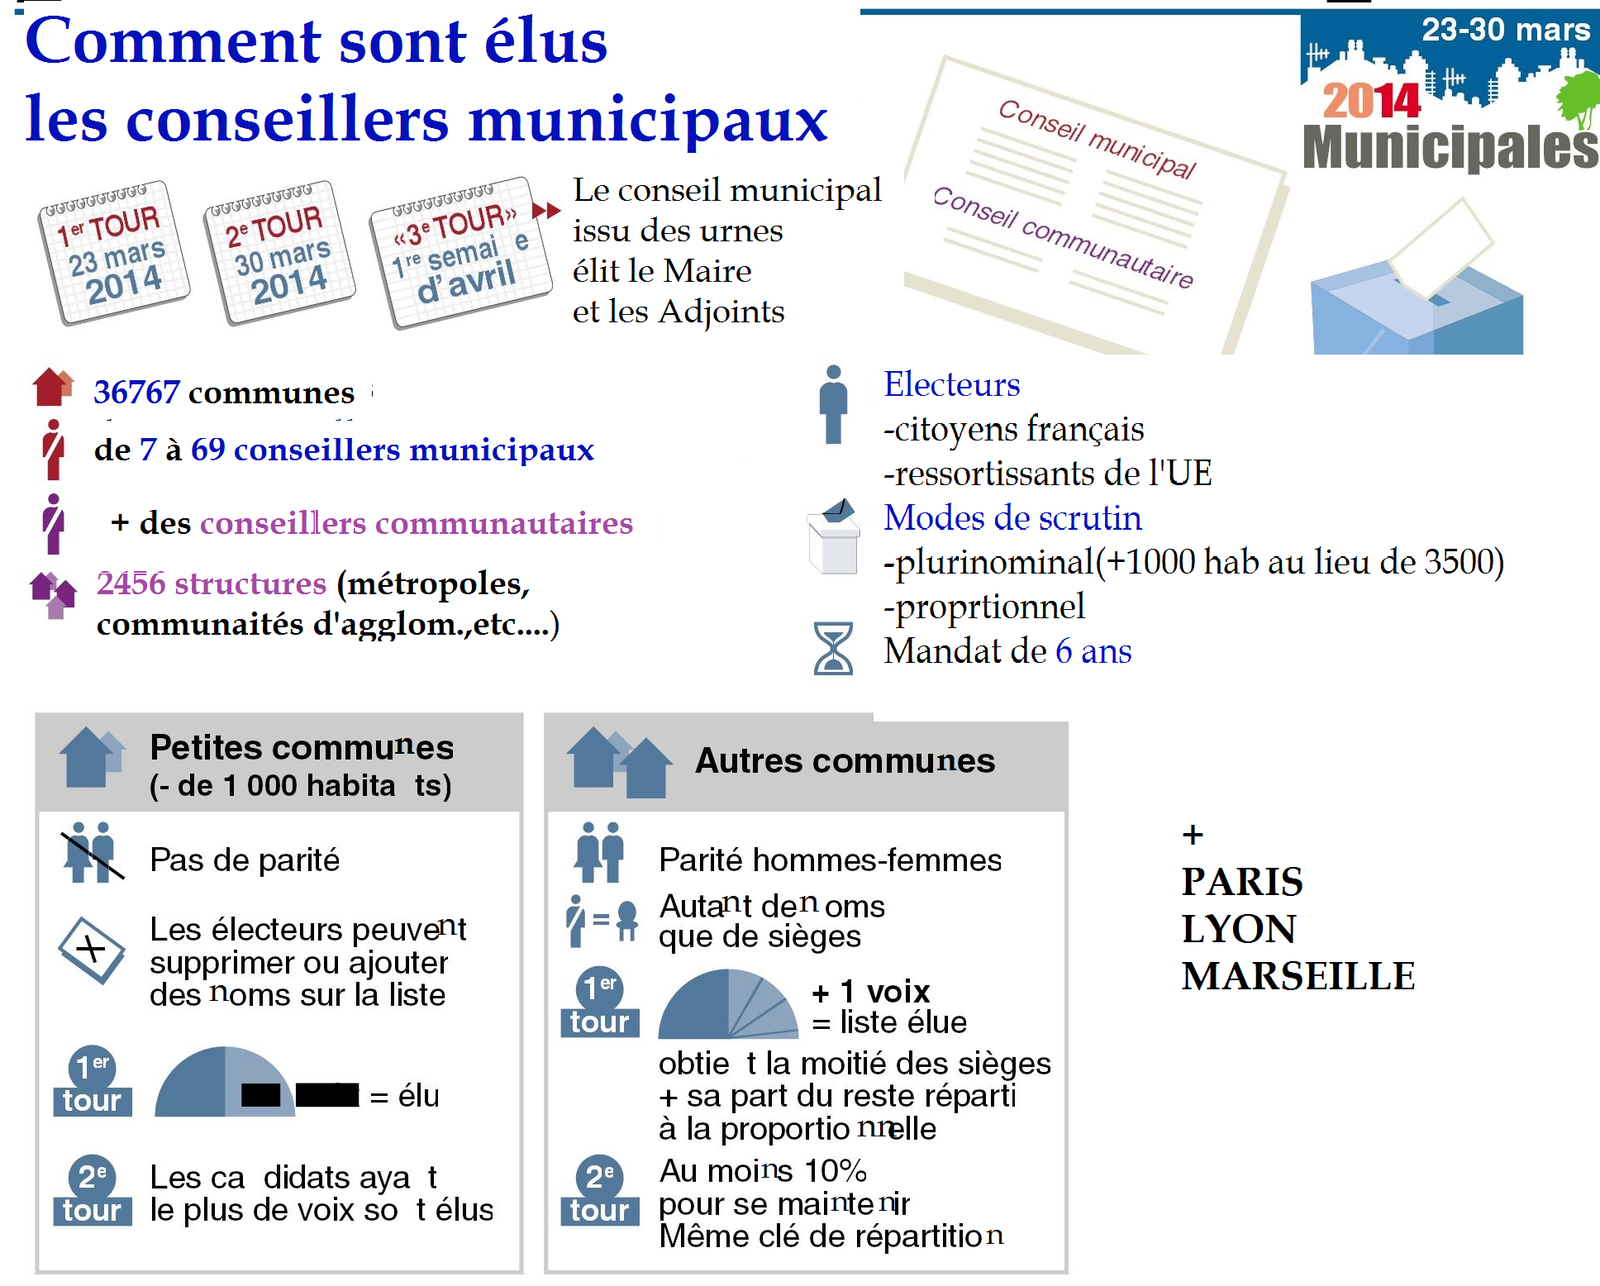 ELECTIONS MUNICIPALES 2014: